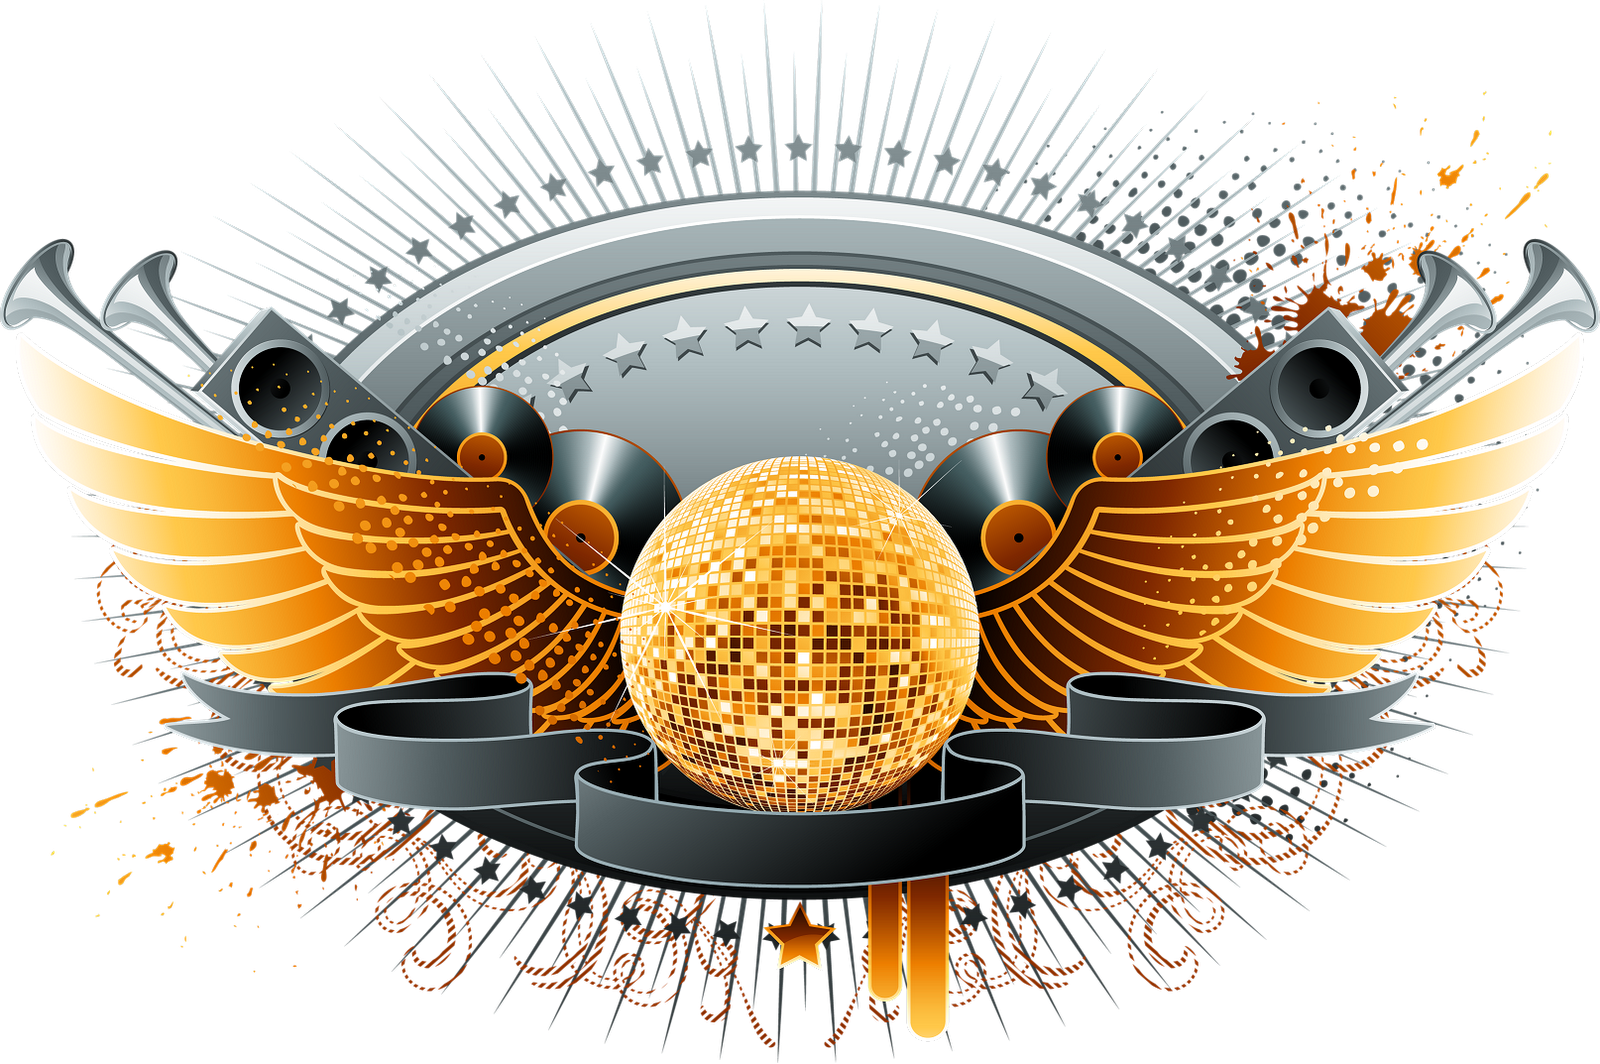 Png Music Free & Free Music.png Transparent Images #22182.